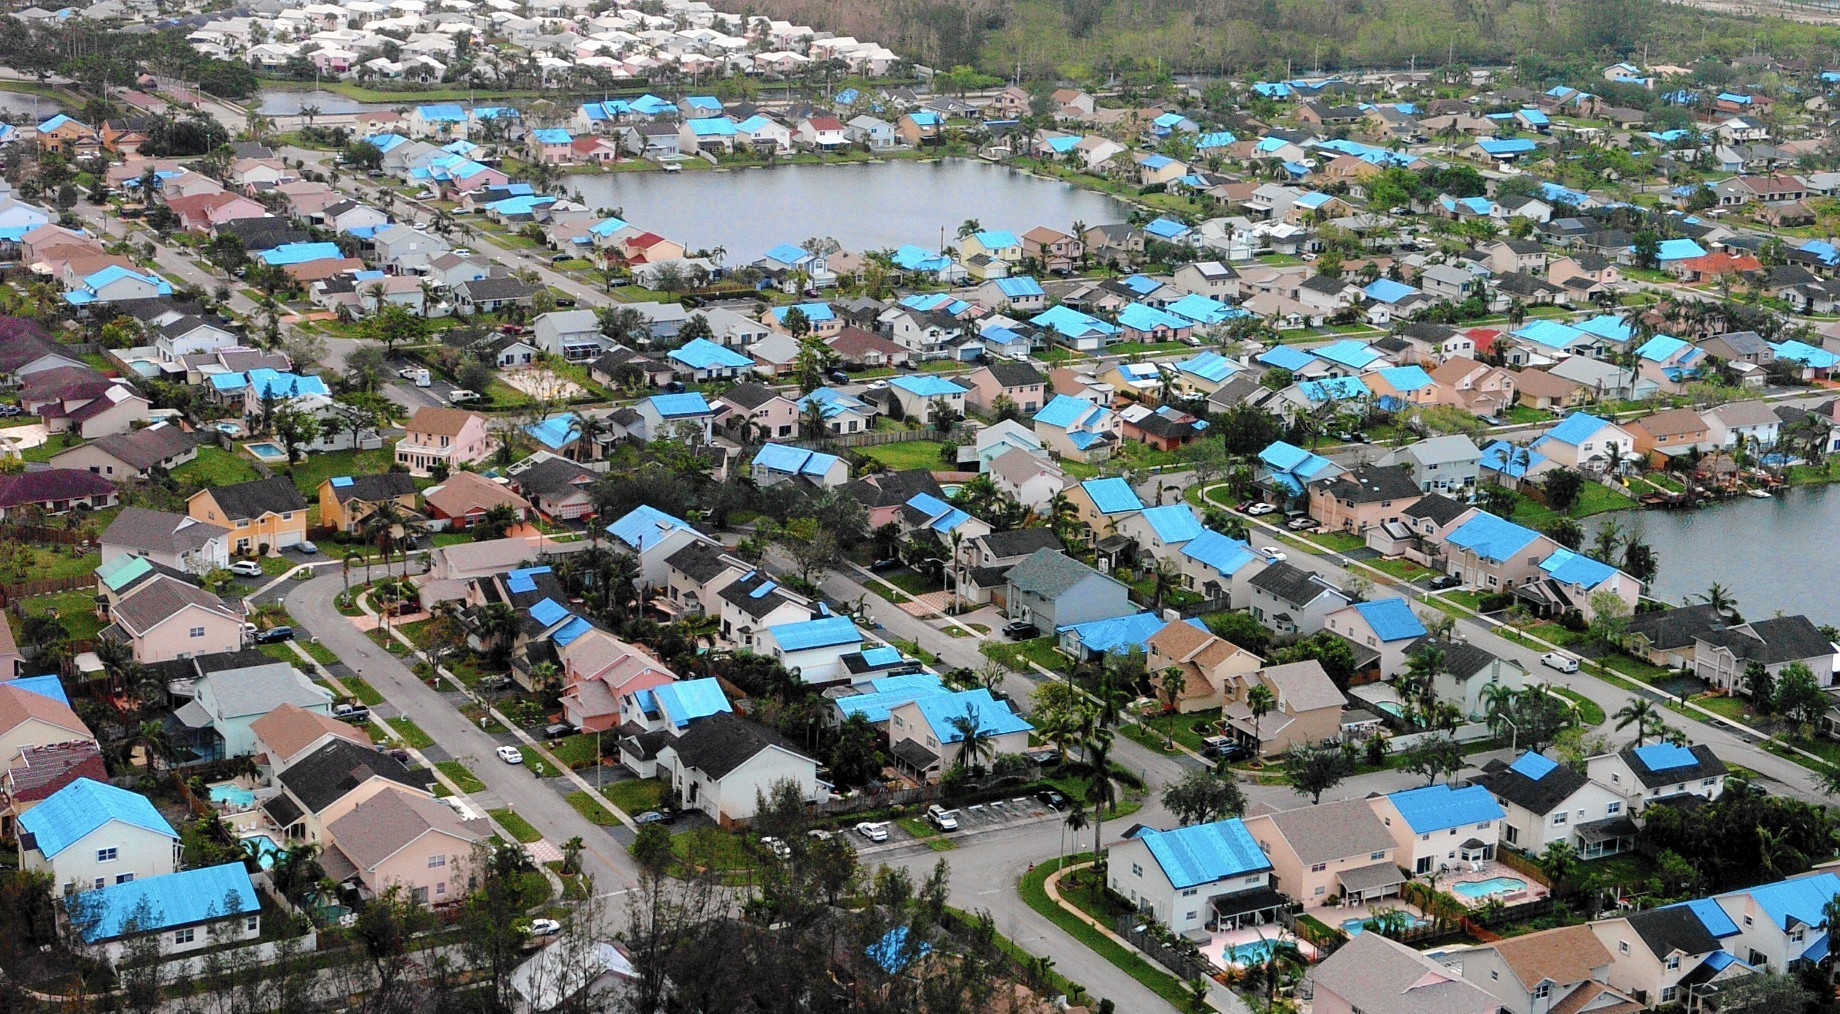 In Florida, after Hurricane Wilma 90